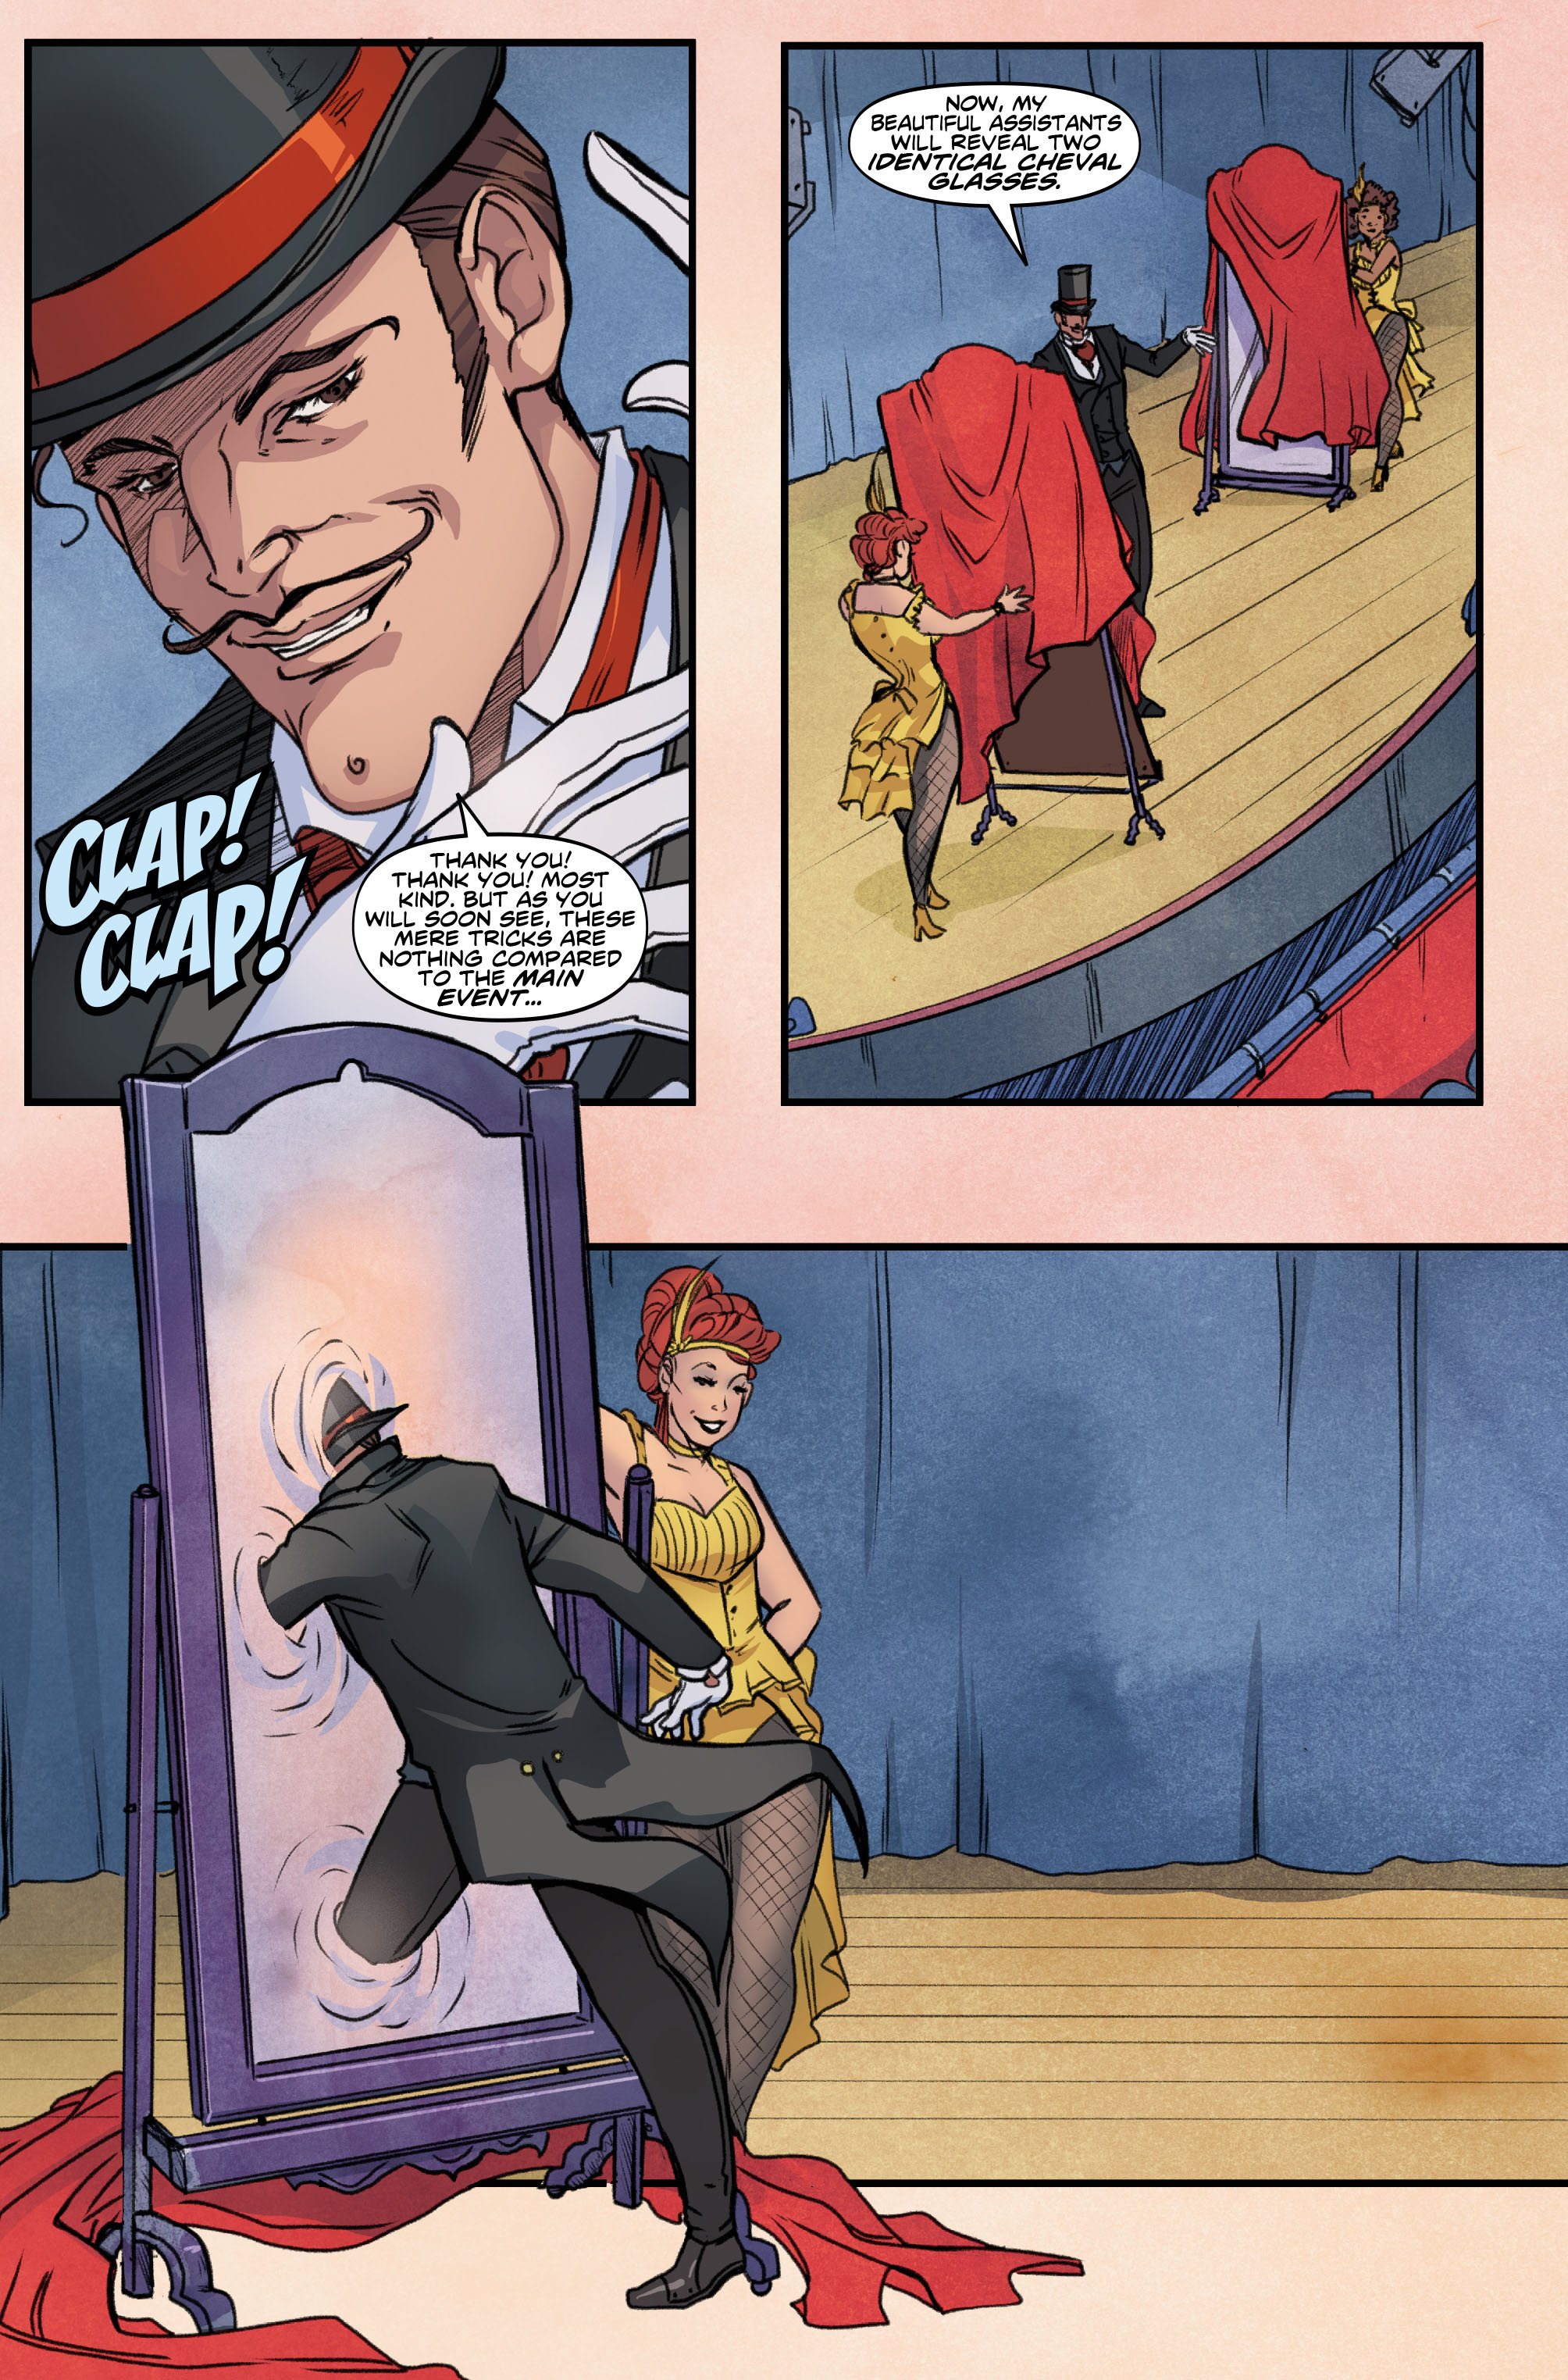 Doctor Who: The Eighth Doctor #3 Preview Page